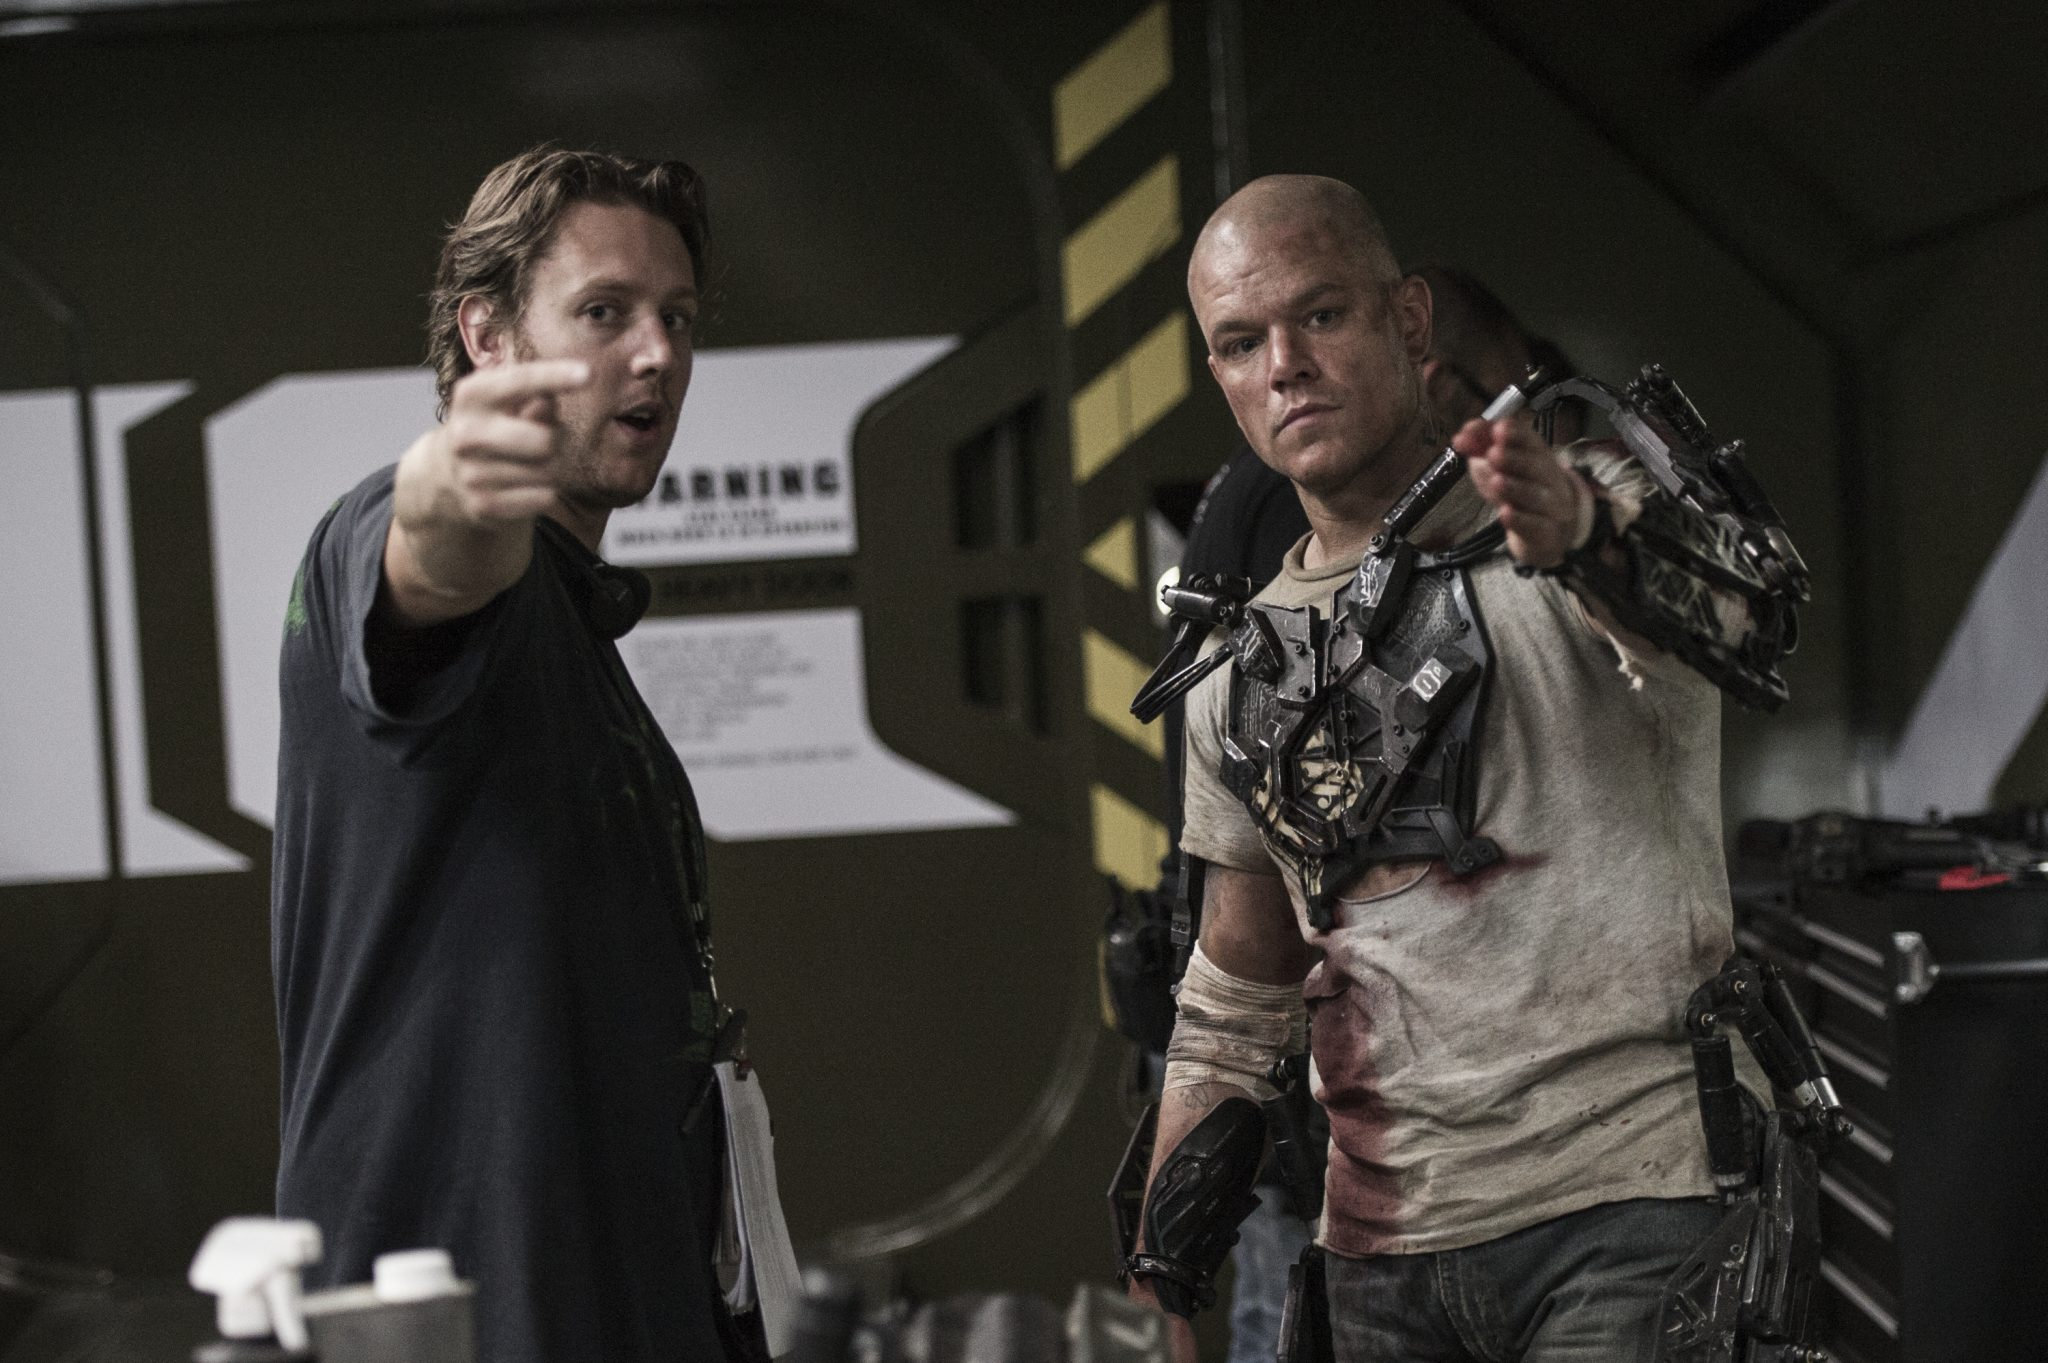 Neill Blomkamp moves ahead with 'The Gone World' - leaving Alien 5 behind